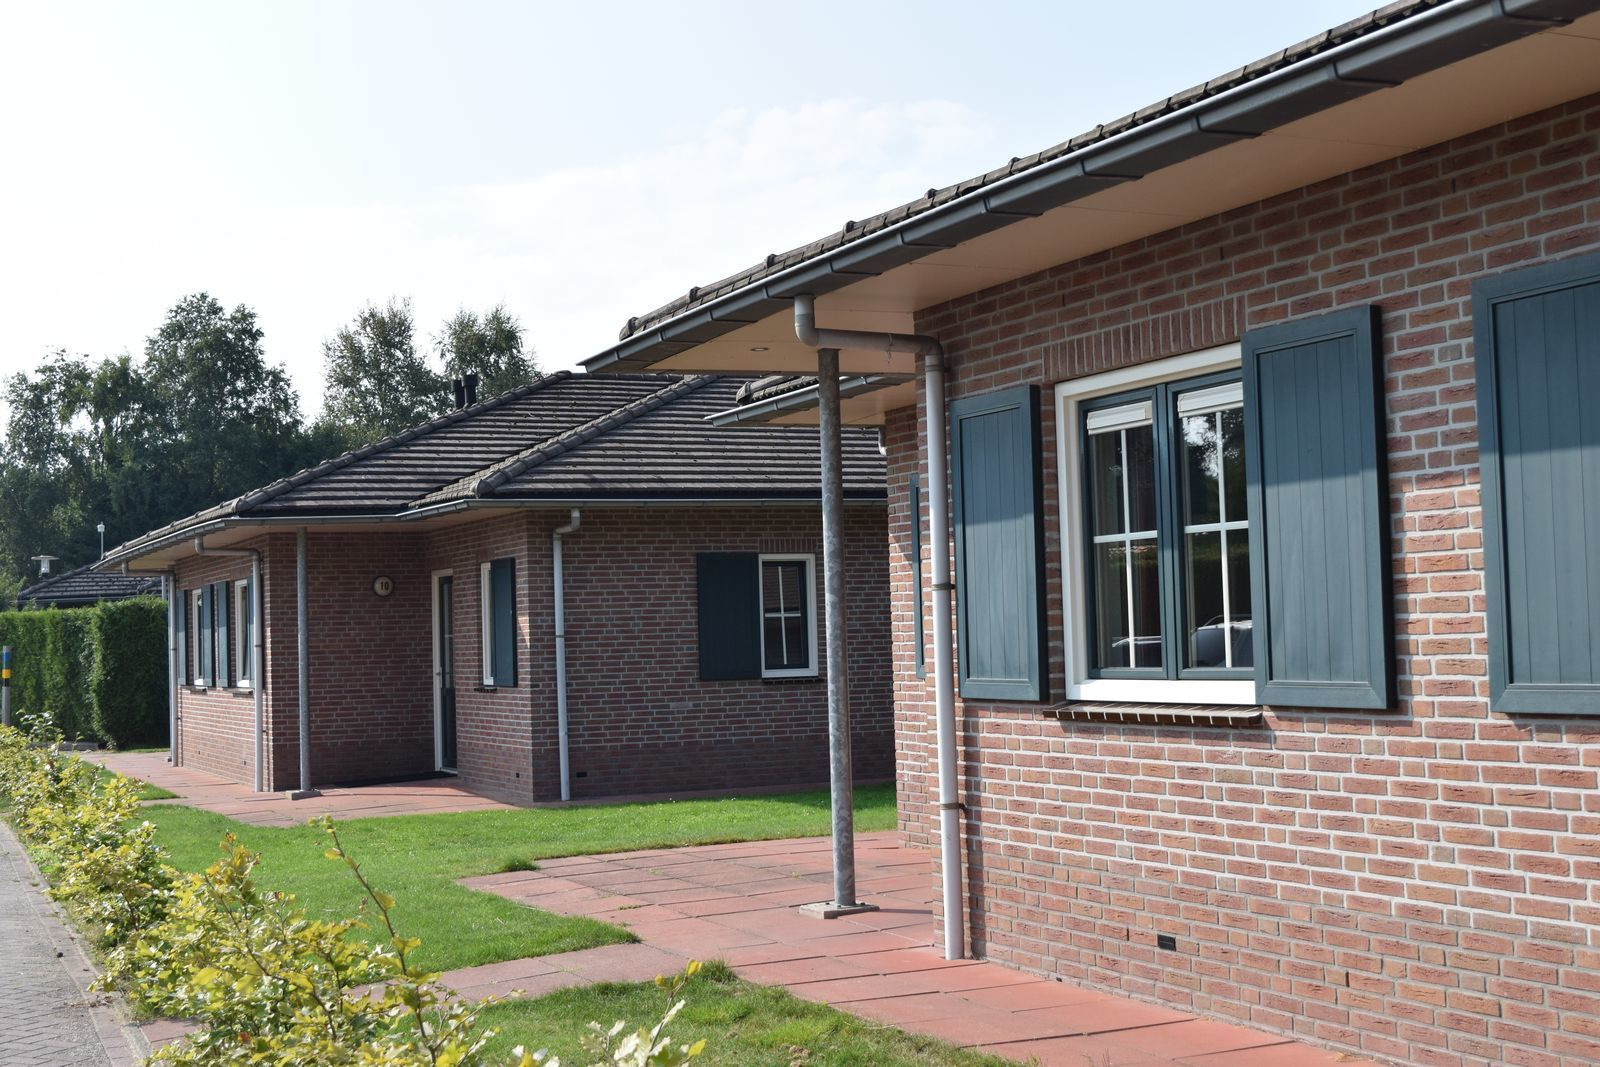 Ganzebeek 14-person bungalow